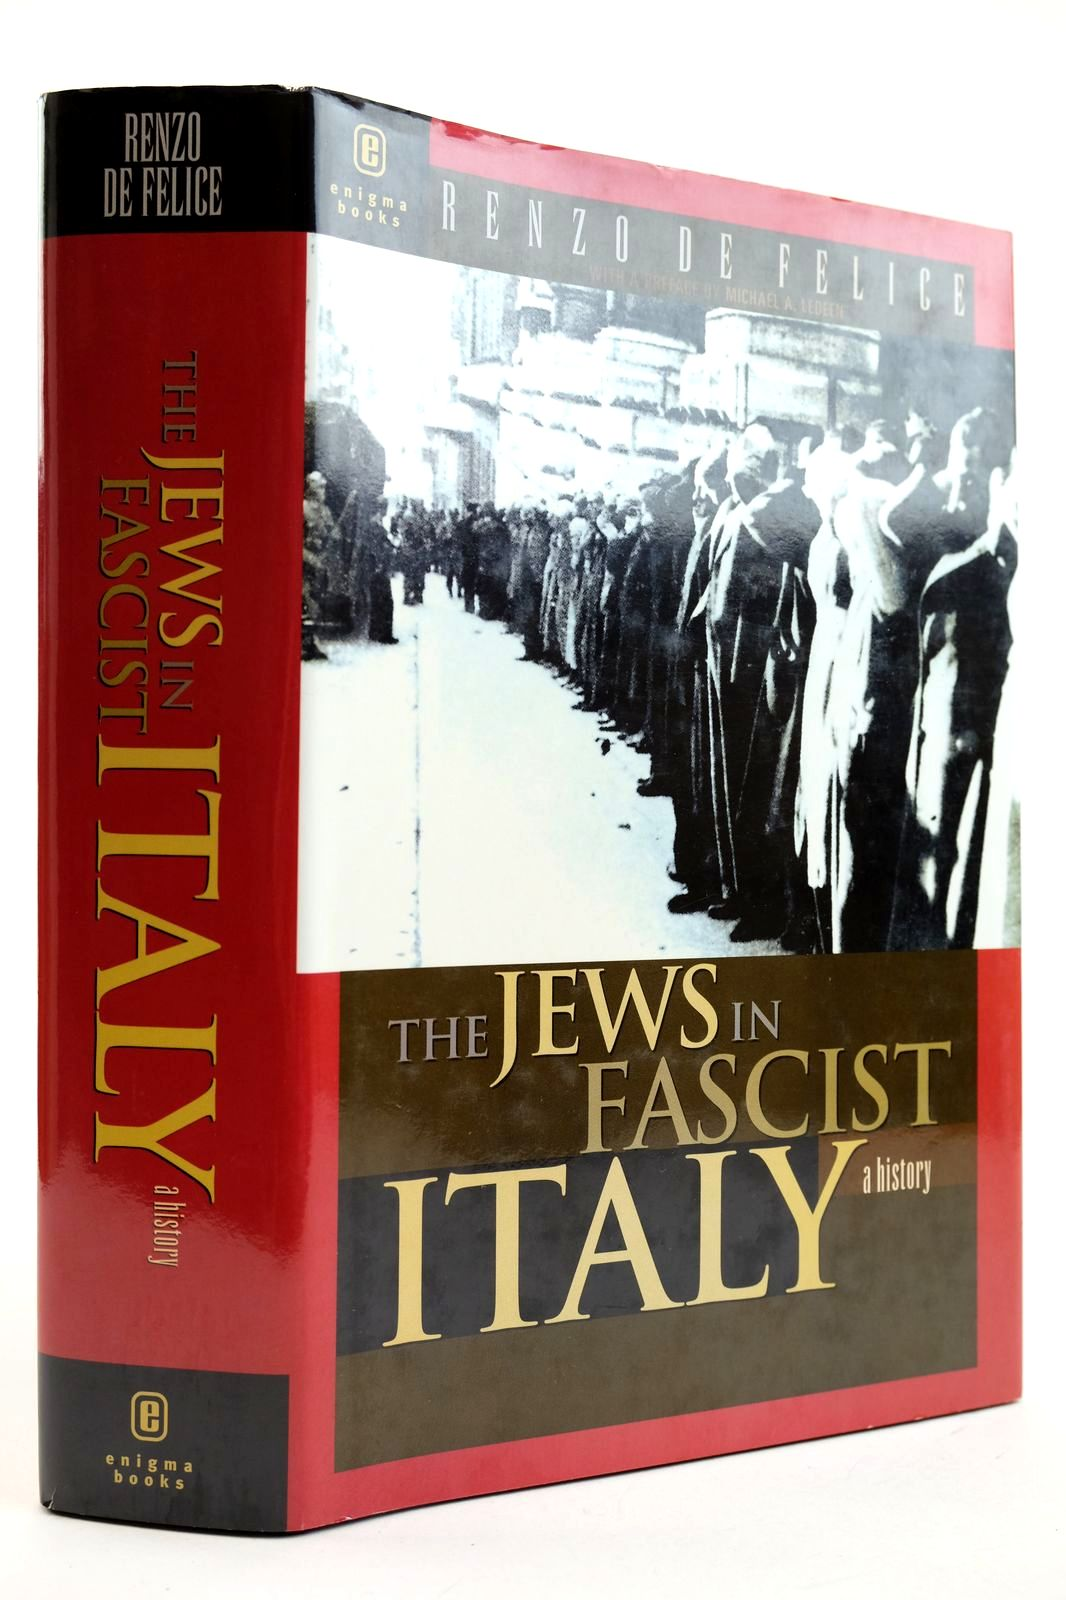 Photo of THE JEWS IN FASCIST ITALY A HISTORY written by De Felice, Renzo Ledeen, Michael A. published by Enigma Books (STOCK CODE: 2132649)  for sale by Stella & Rose's Books